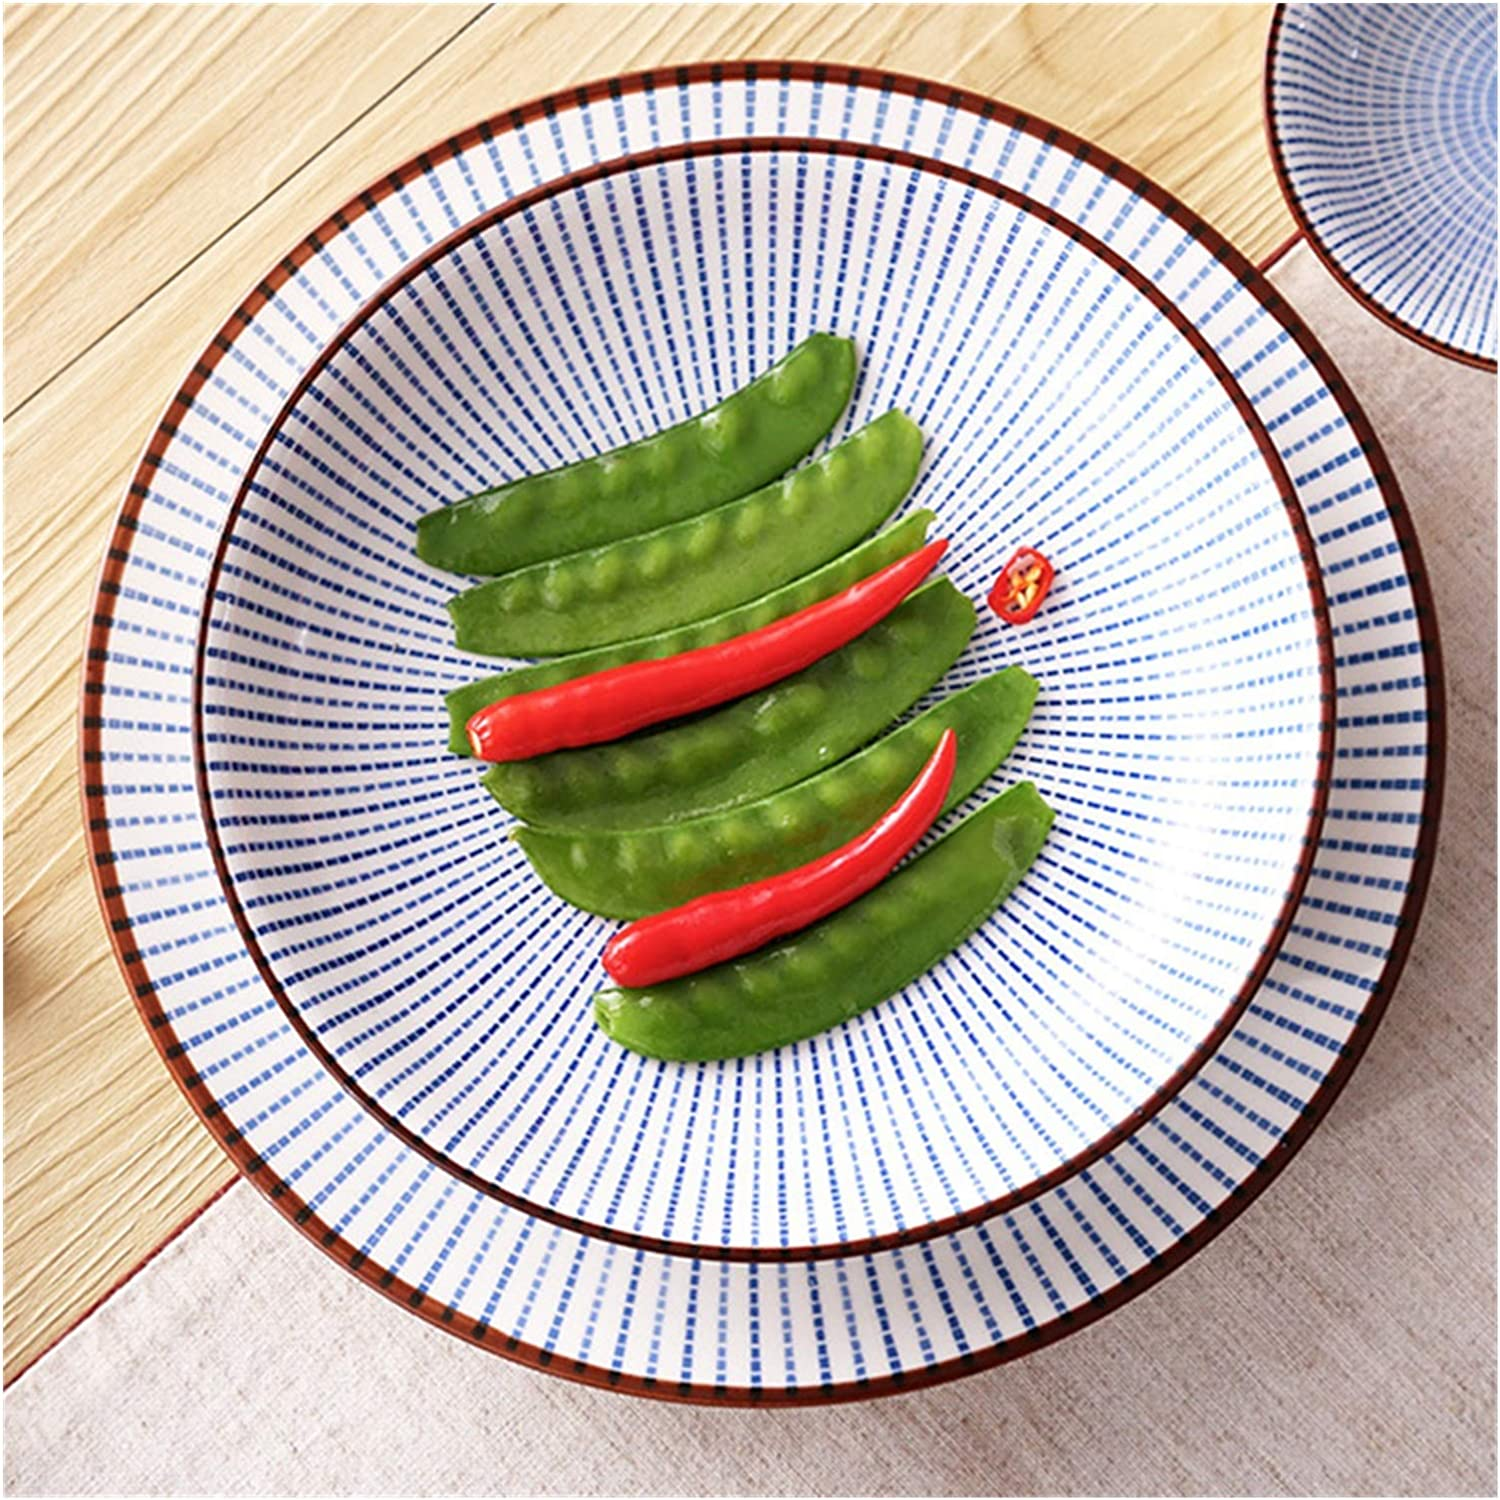 safety plate 6 8 10inch Ceramic Dinner Japanese Max 85% OFF Plate Dish Style Porcel